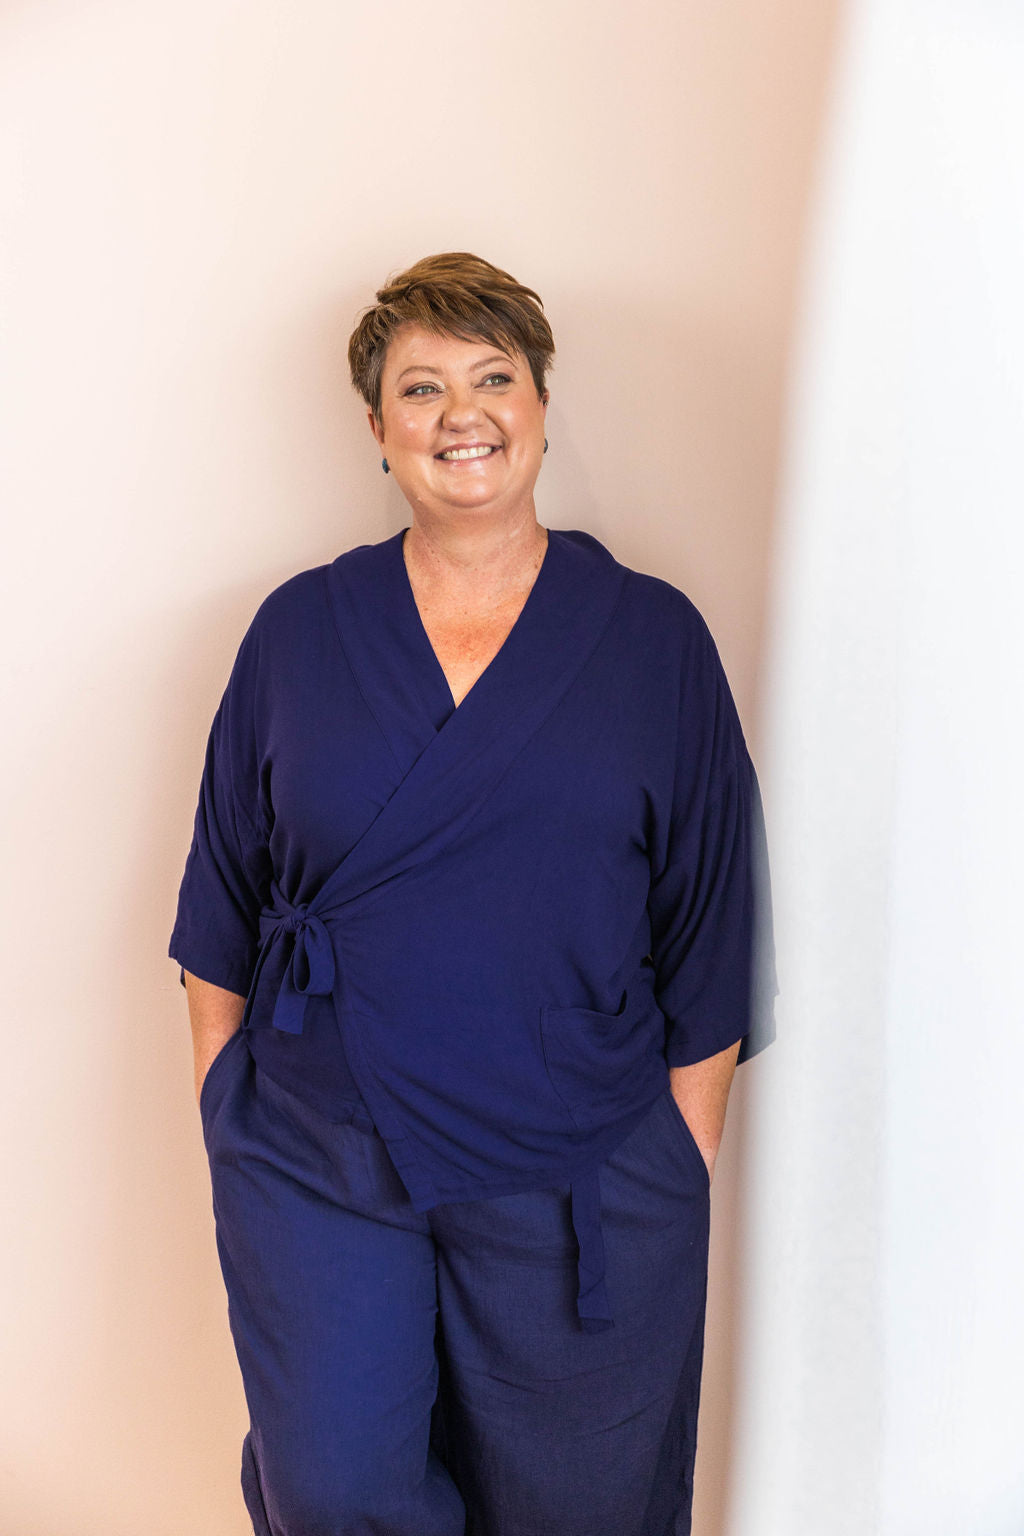 woman smiling wearing all navy limonata adaptive wrap top and linen pants